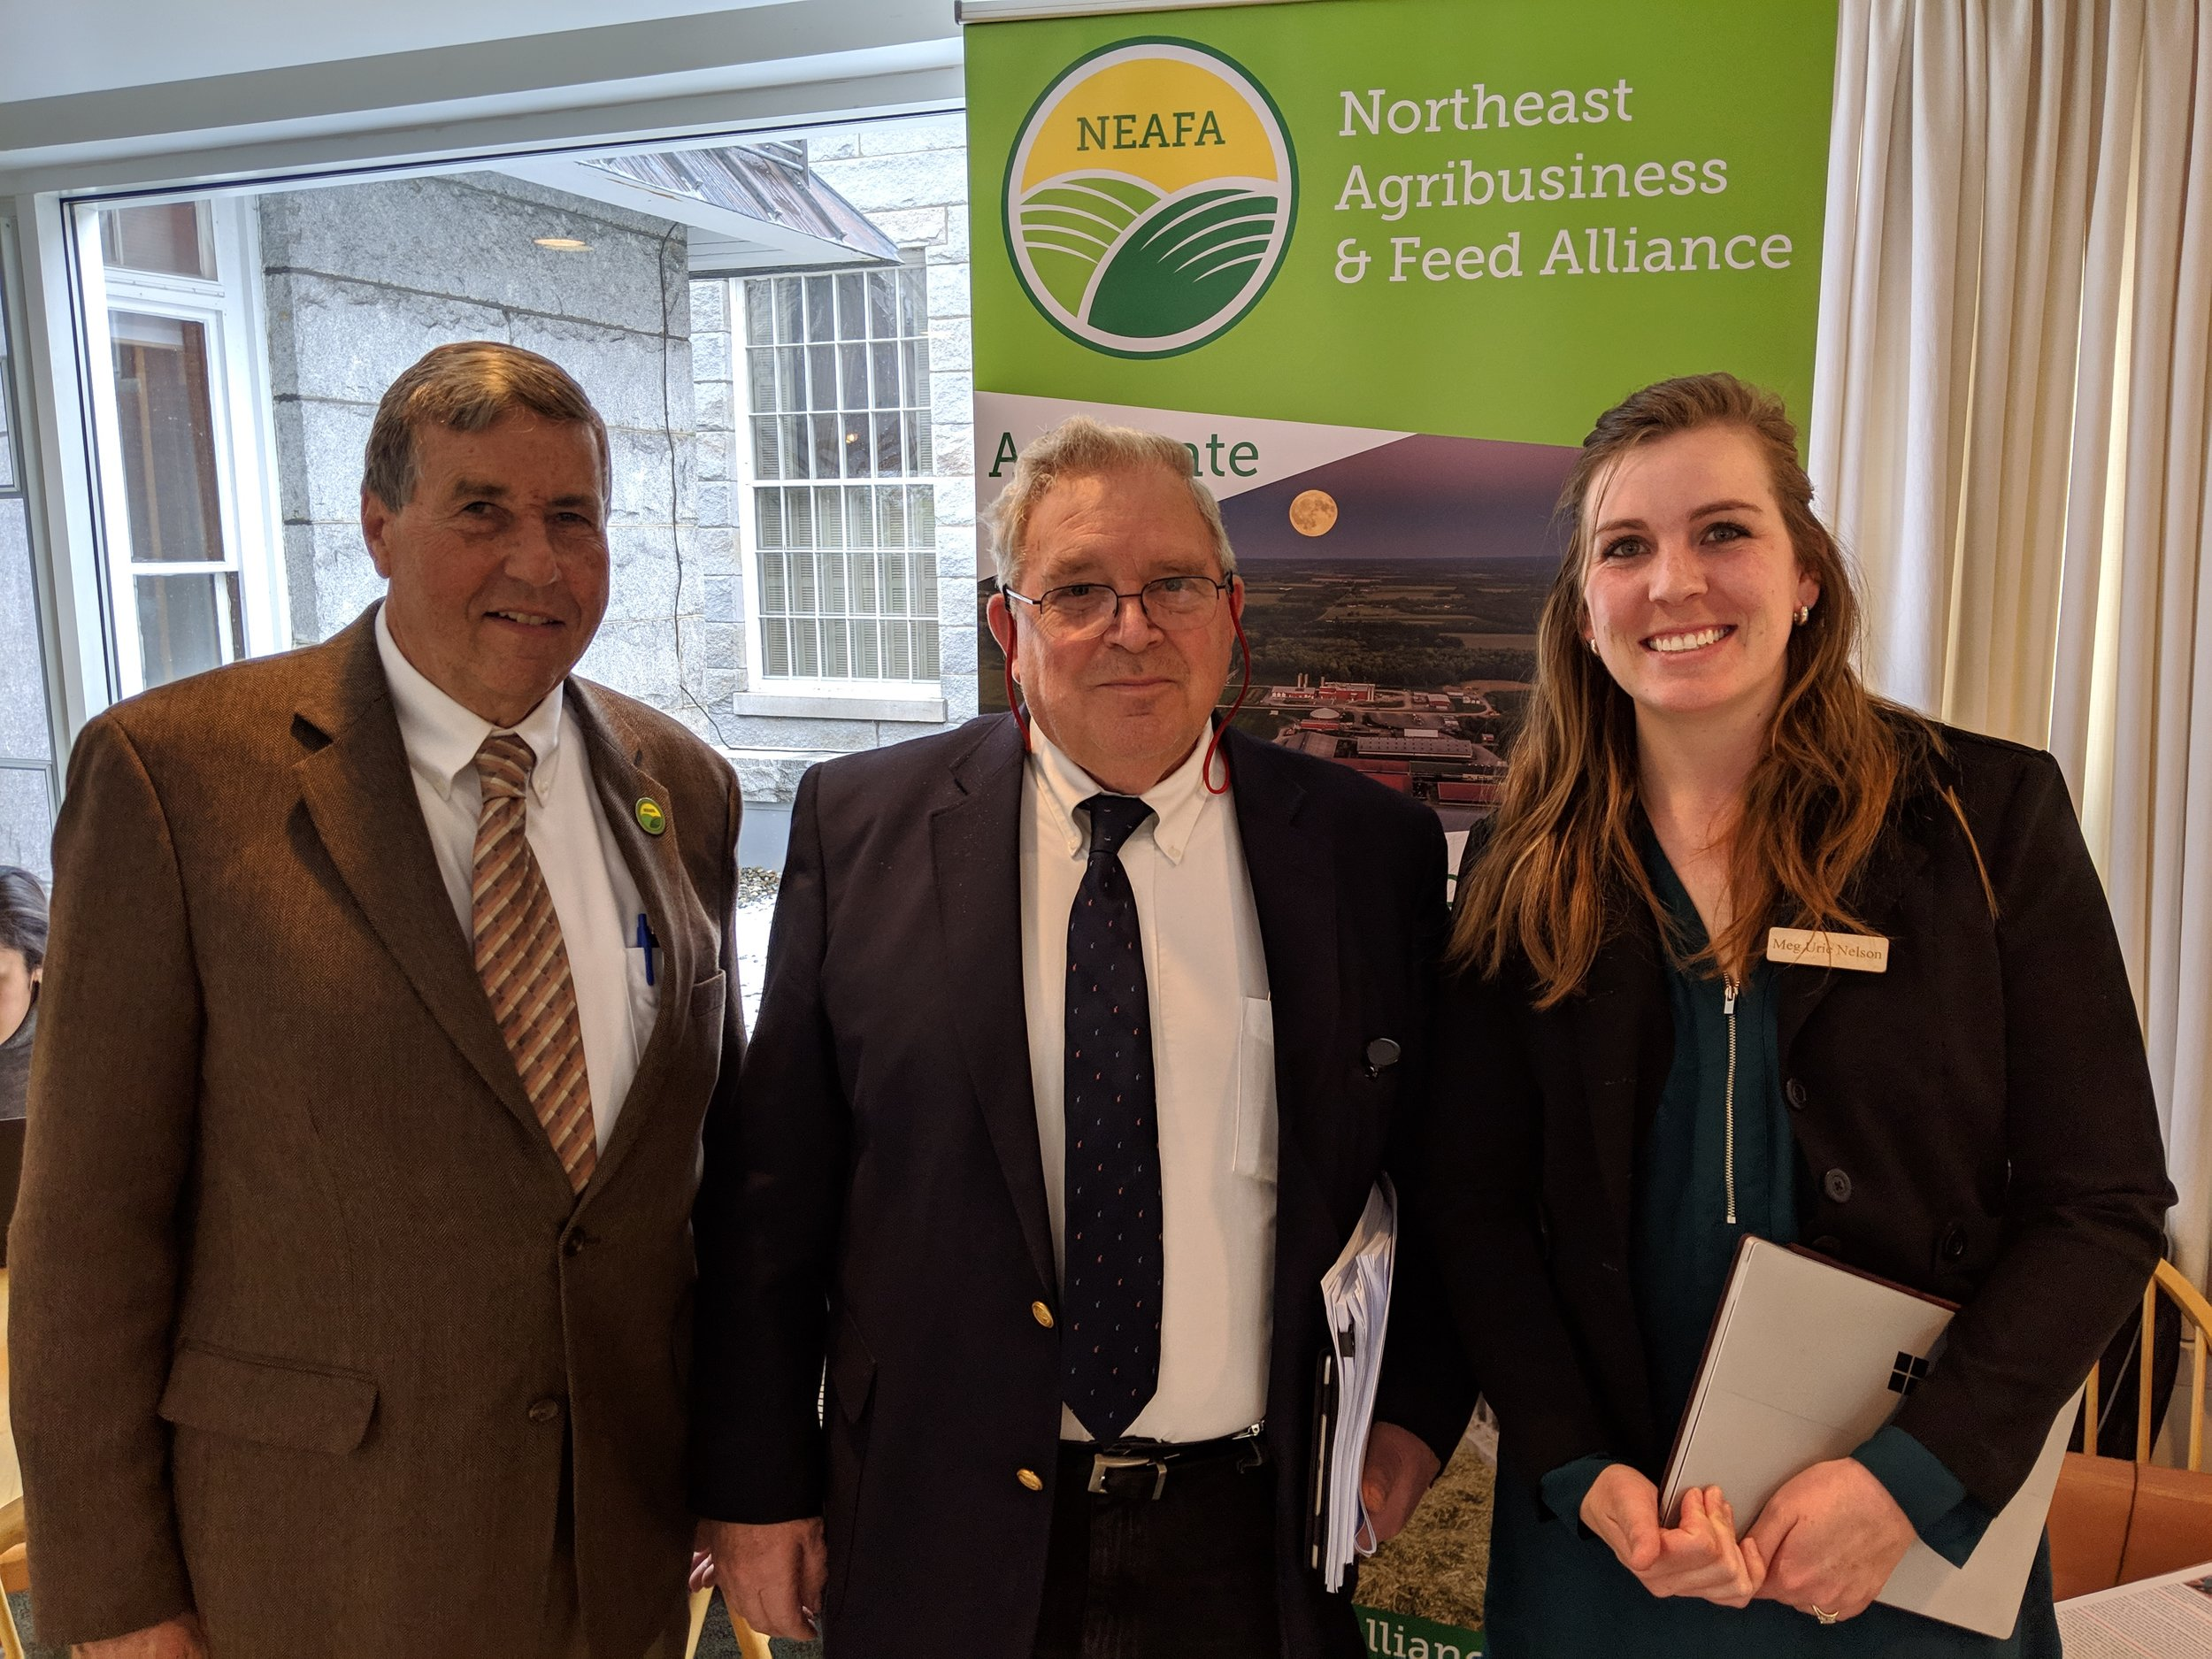 NEAFA co-hosted a legislative reception in Montpelier on April 10th.  NEAFA representatives Art Whitman, Governmental Relations Committee member, and Meg Nelson, NEAFA's VT Legislative Representative, join Representative Harvey Smith who stopped by to talk about policy issues.